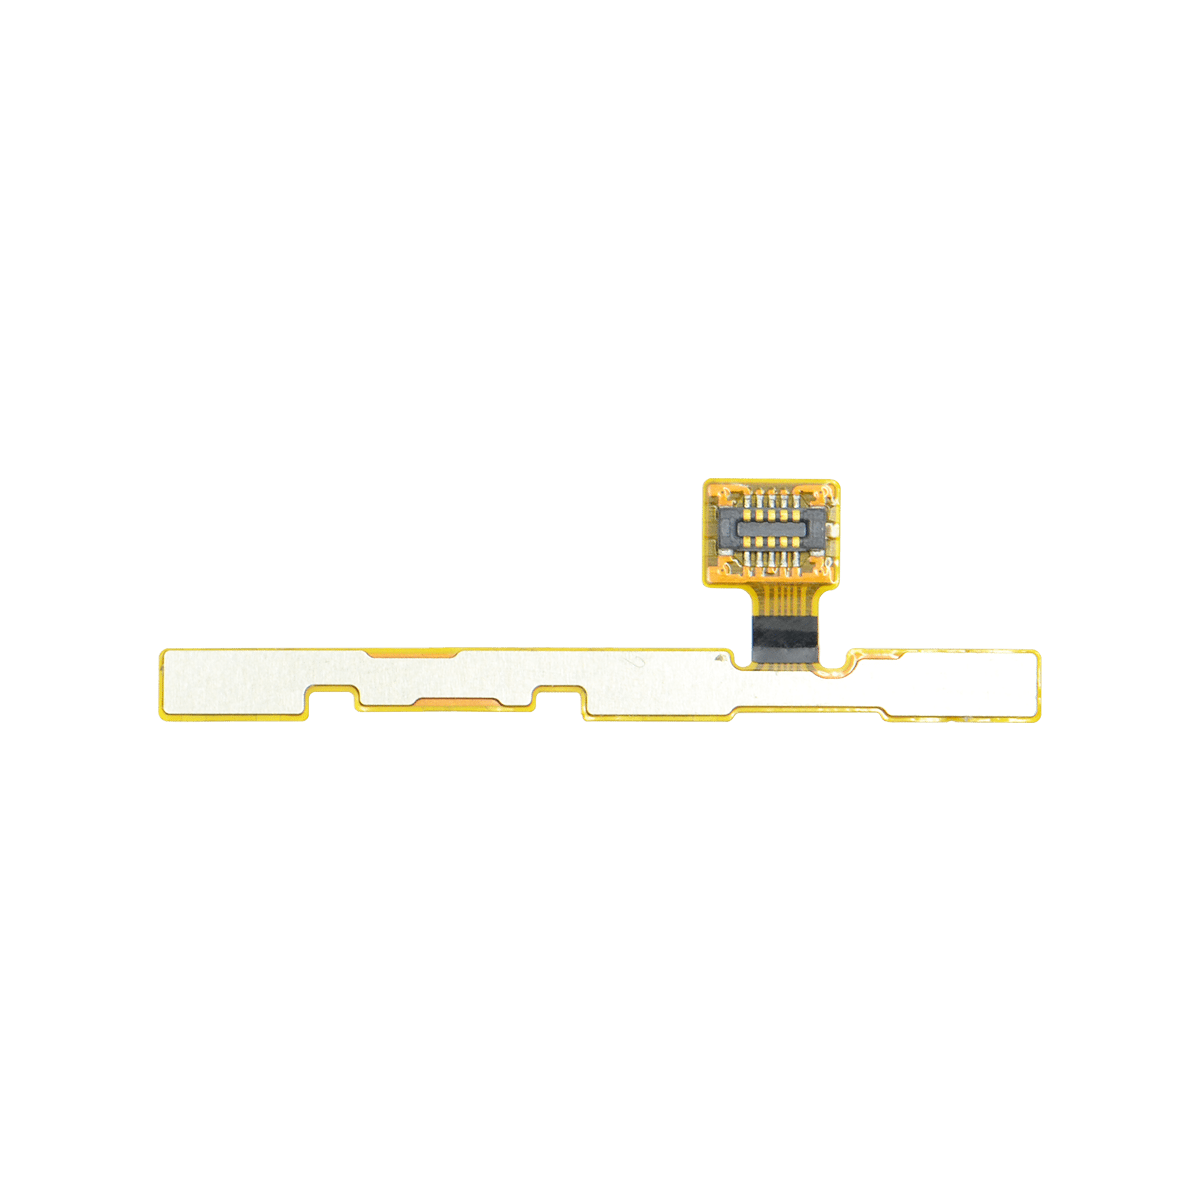 Huawei Honor 8 Power & Volume Buttons Flex Cable Replacement